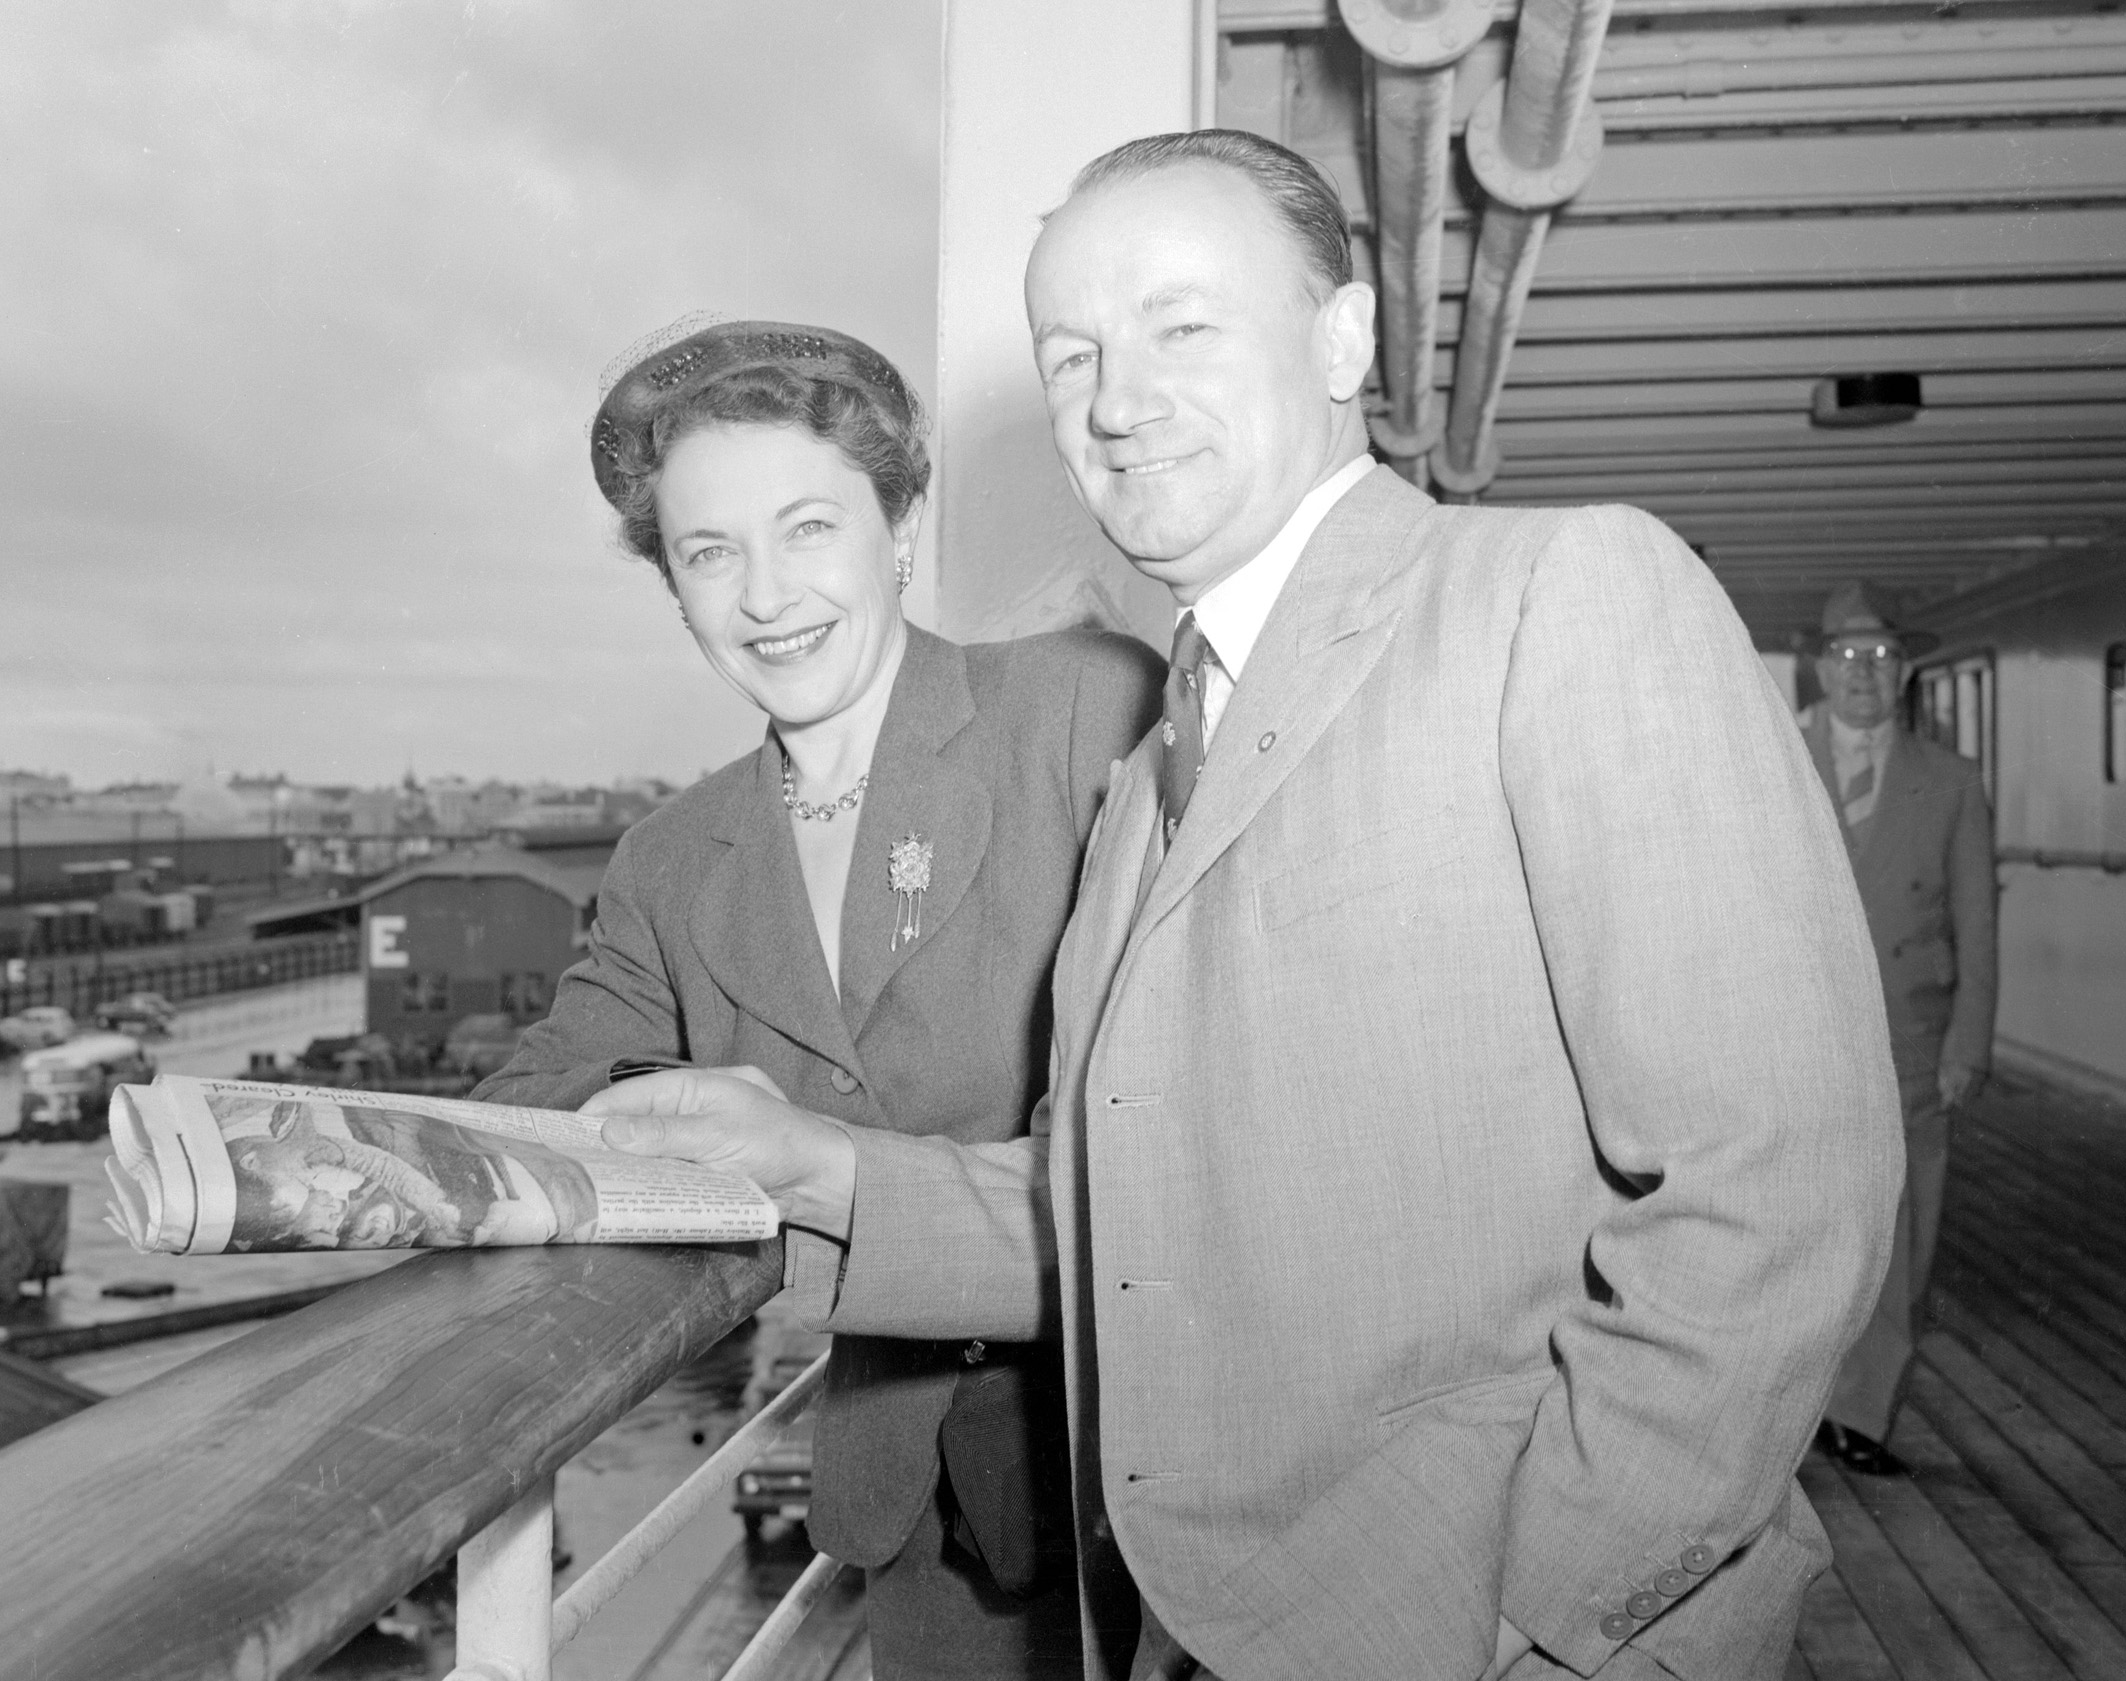 PORTRAIT OF AUSTRALIAN CRICKETER SIR DONALD BRADMAN PICTURED WITH HIS WIFE LADY BRADMAN